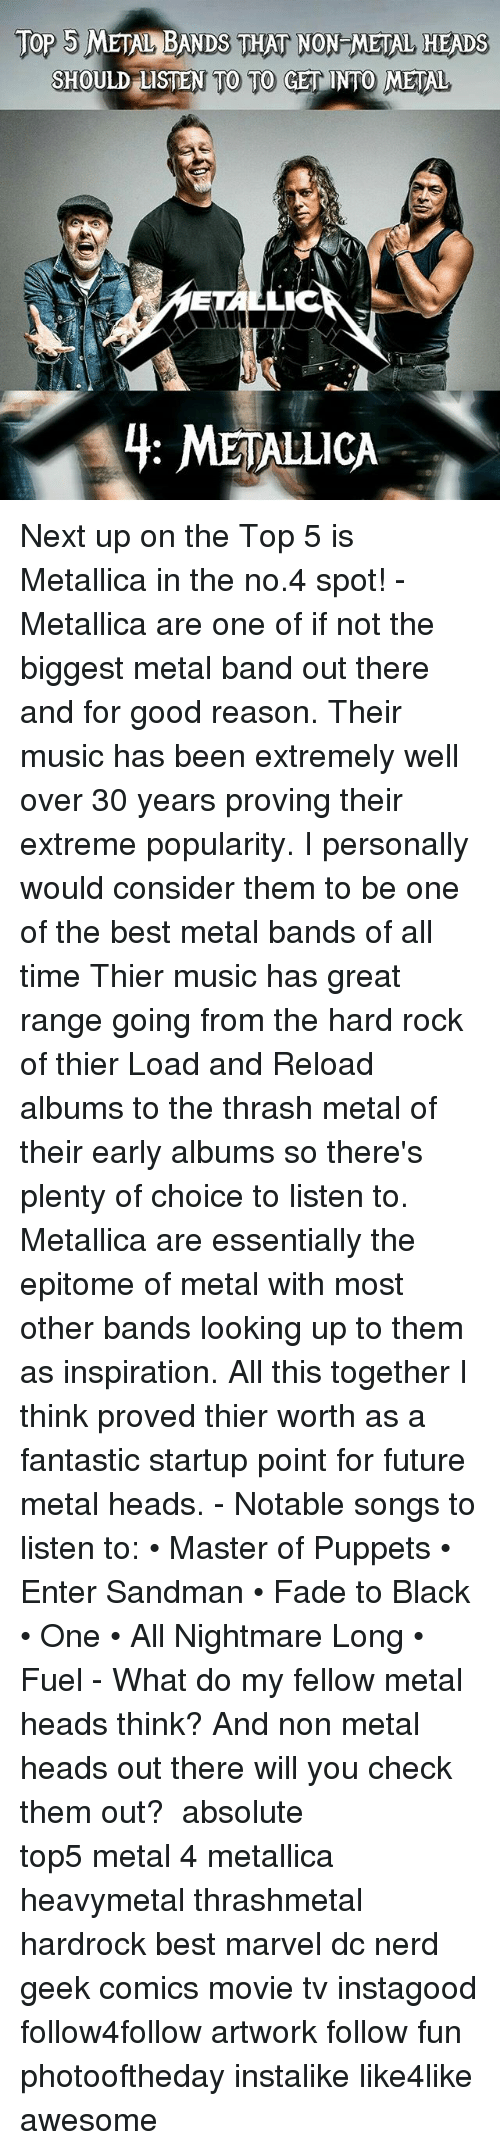 Entering Sandman: Top 5 METAL BANDS THAT NON METAL HEADS  SHOULD LISTEN TO TO GET INTO METAL  ETAL  LIC  4: METALLICA Next up on the Top 5 is Metallica in the no.4 spot! - Metallica are one of if not the biggest metal band out there and for good reason. Their music has been extremely well over 30 years proving their extreme popularity. I personally would consider them to be one of the best metal bands of all time Thier music has great range going from the hard rock of thier Load and Reload albums to the thrash metal of their early albums so there's plenty of choice to listen to. Metallica are essentially the epitome of metal with most other bands looking up to them as inspiration. All this together I think proved thier worth as a fantastic startup point for future metal heads. - Notable songs to listen to: • Master of Puppets • Enter Sandman • Fade to Black • One • All Nightmare Long • Fuel - What do my fellow metal heads think? And non metal heads out there will you check them out? ⚋⚋⚋⚋⚋⚋⚋⚋⚋⚋⚋⚋⚋⚋⚋⚋⚋⚋ absolute top5 metal 4 metallica heavymetal thrashmetal hardrock best marvel dc nerd geek comics movie tv instagood follow4follow artwork follow fun photooftheday instalike like4like awesome